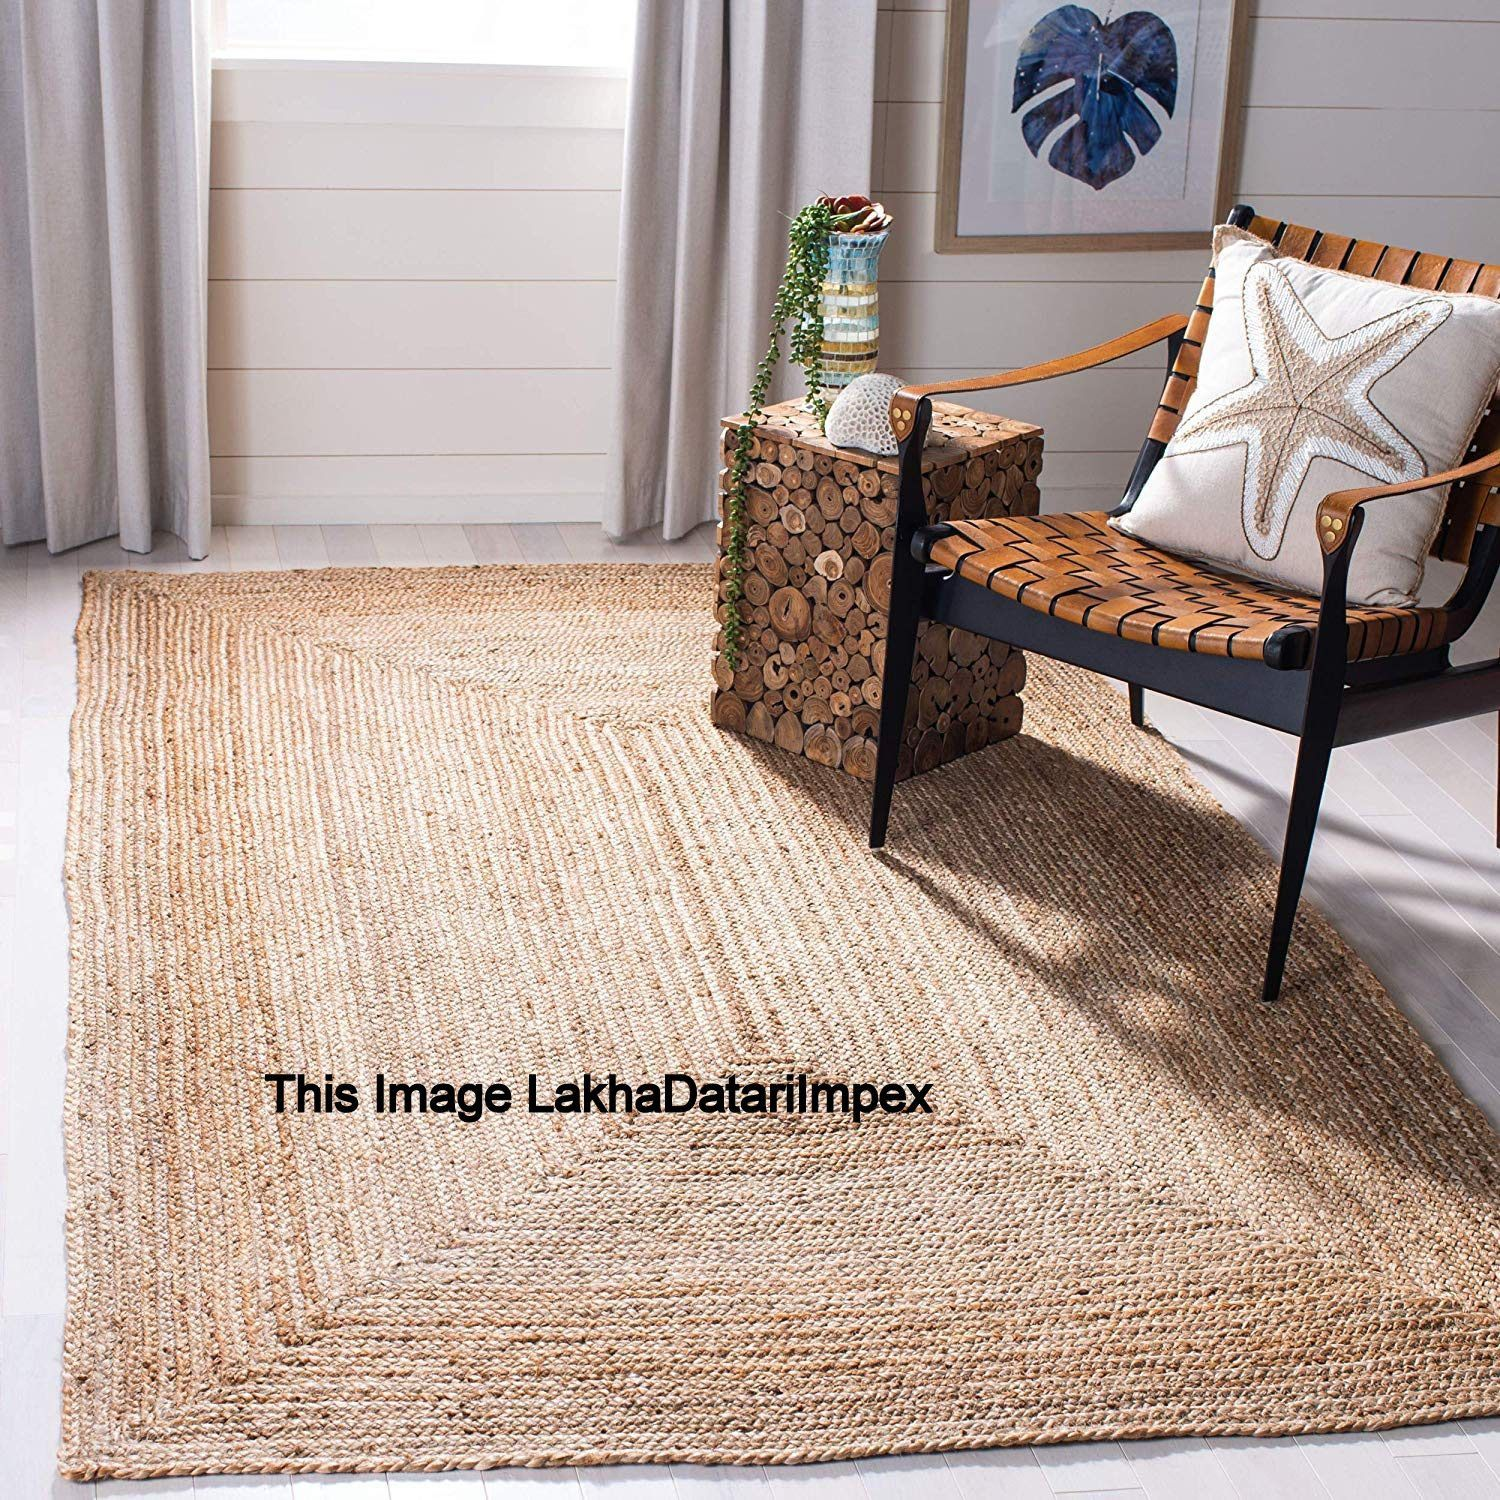 Braided Indian Jute Rug Rag Hand Woven Natural Jute Area Rugs For